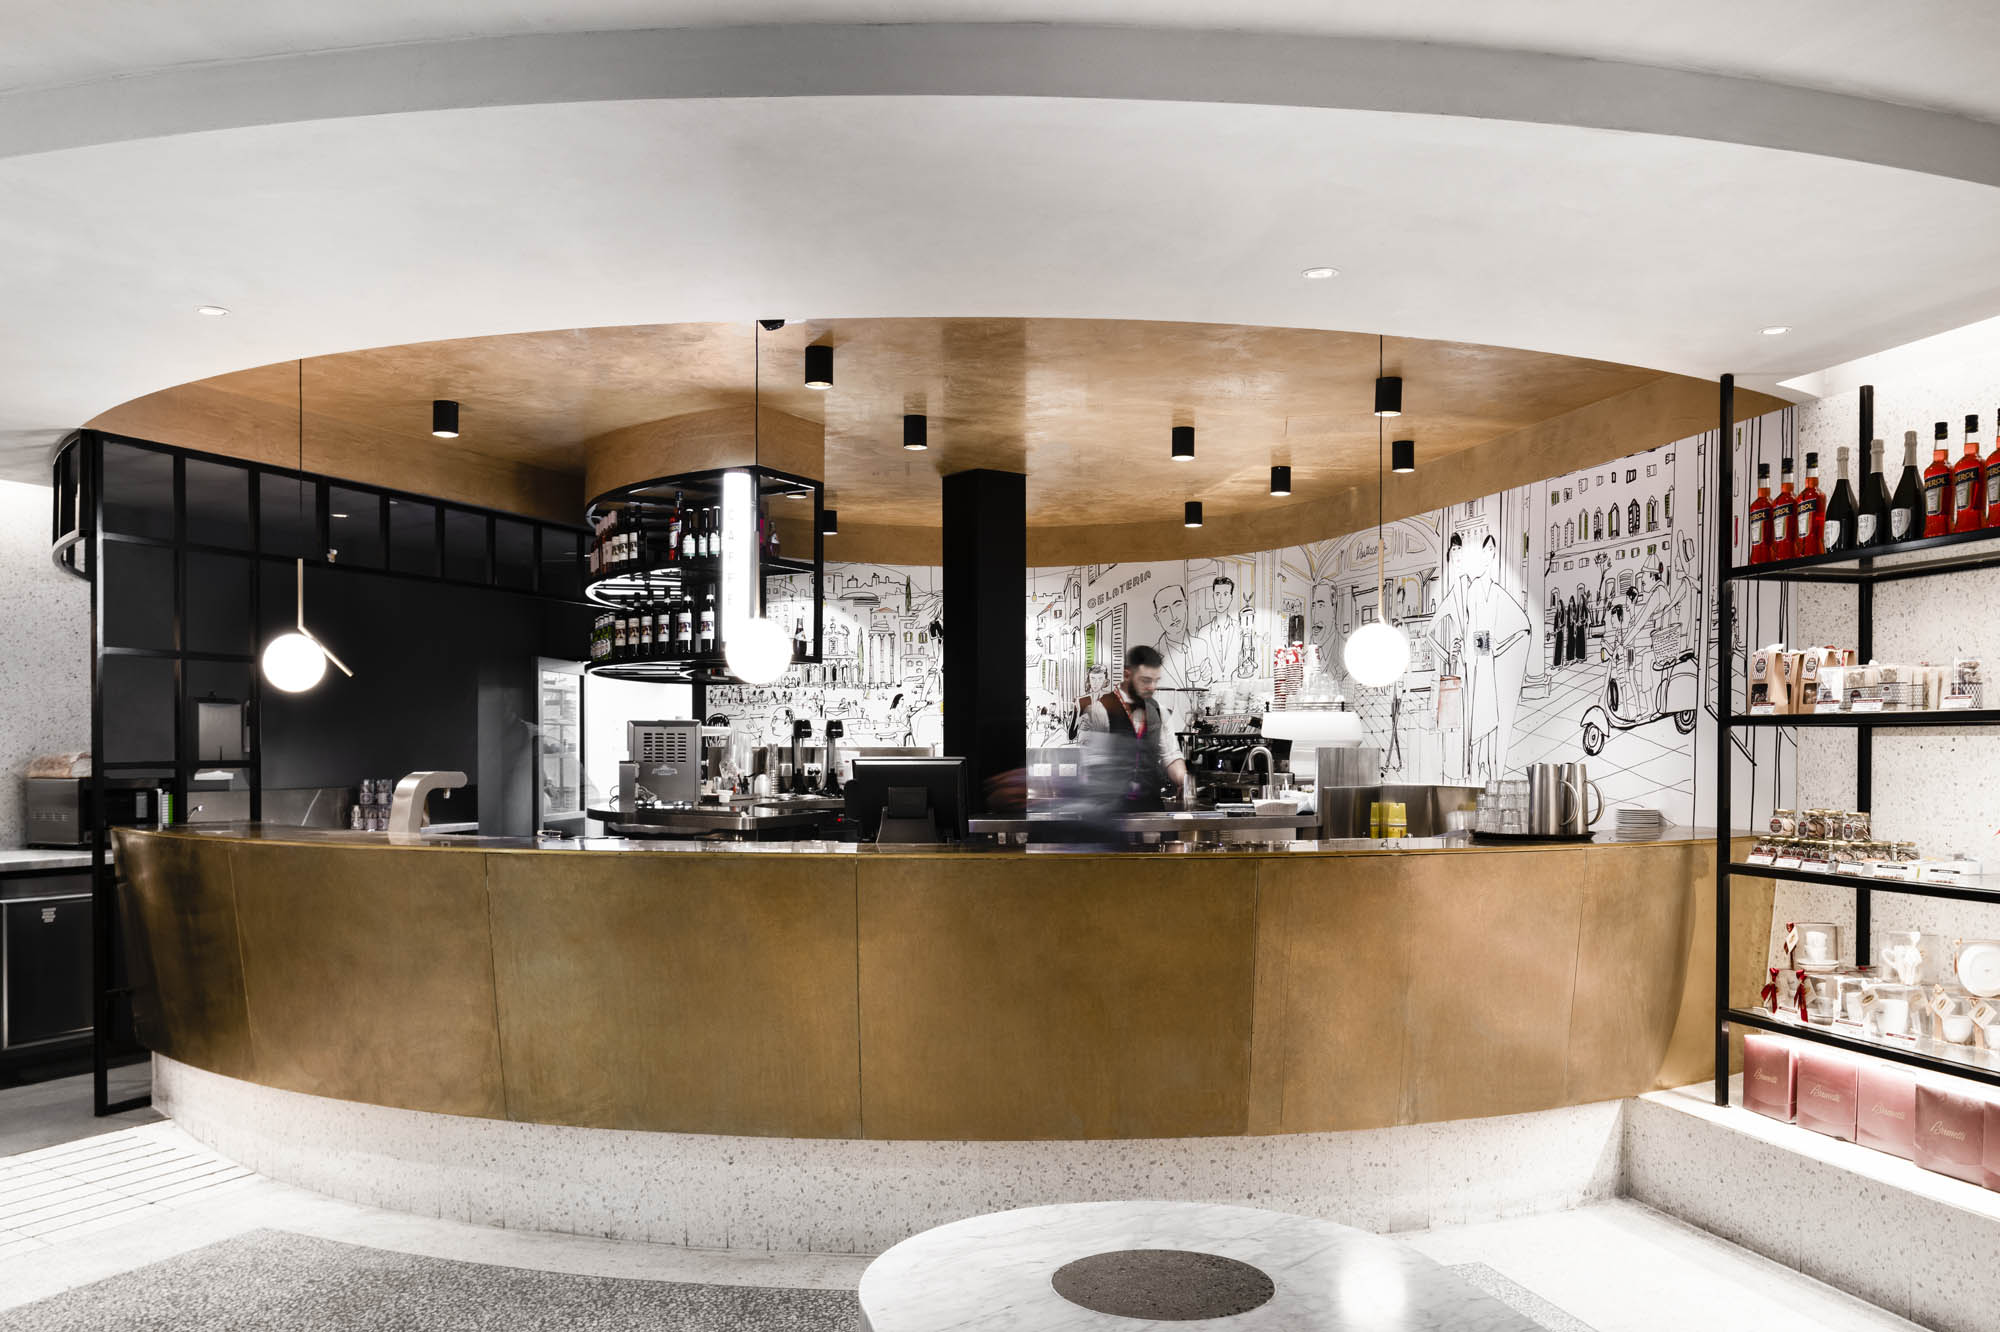 brunetti t2 hospitality interior fitout vic melbourne airport bar alcohol coffee bartender